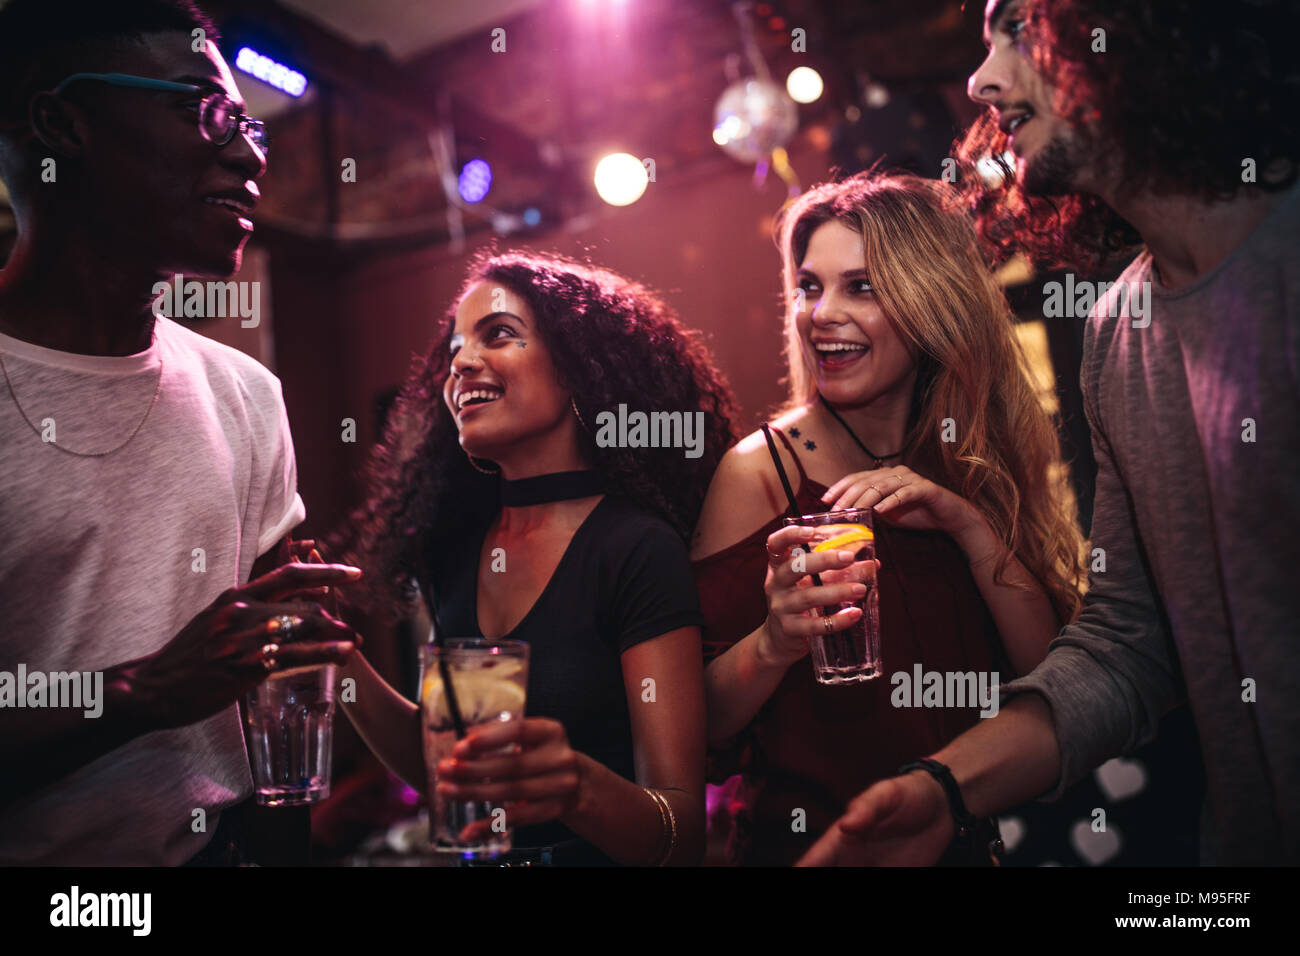 Diverse group of young people with drinks in a club. Happy men and women enjoying nightout at bar. - Stock Image